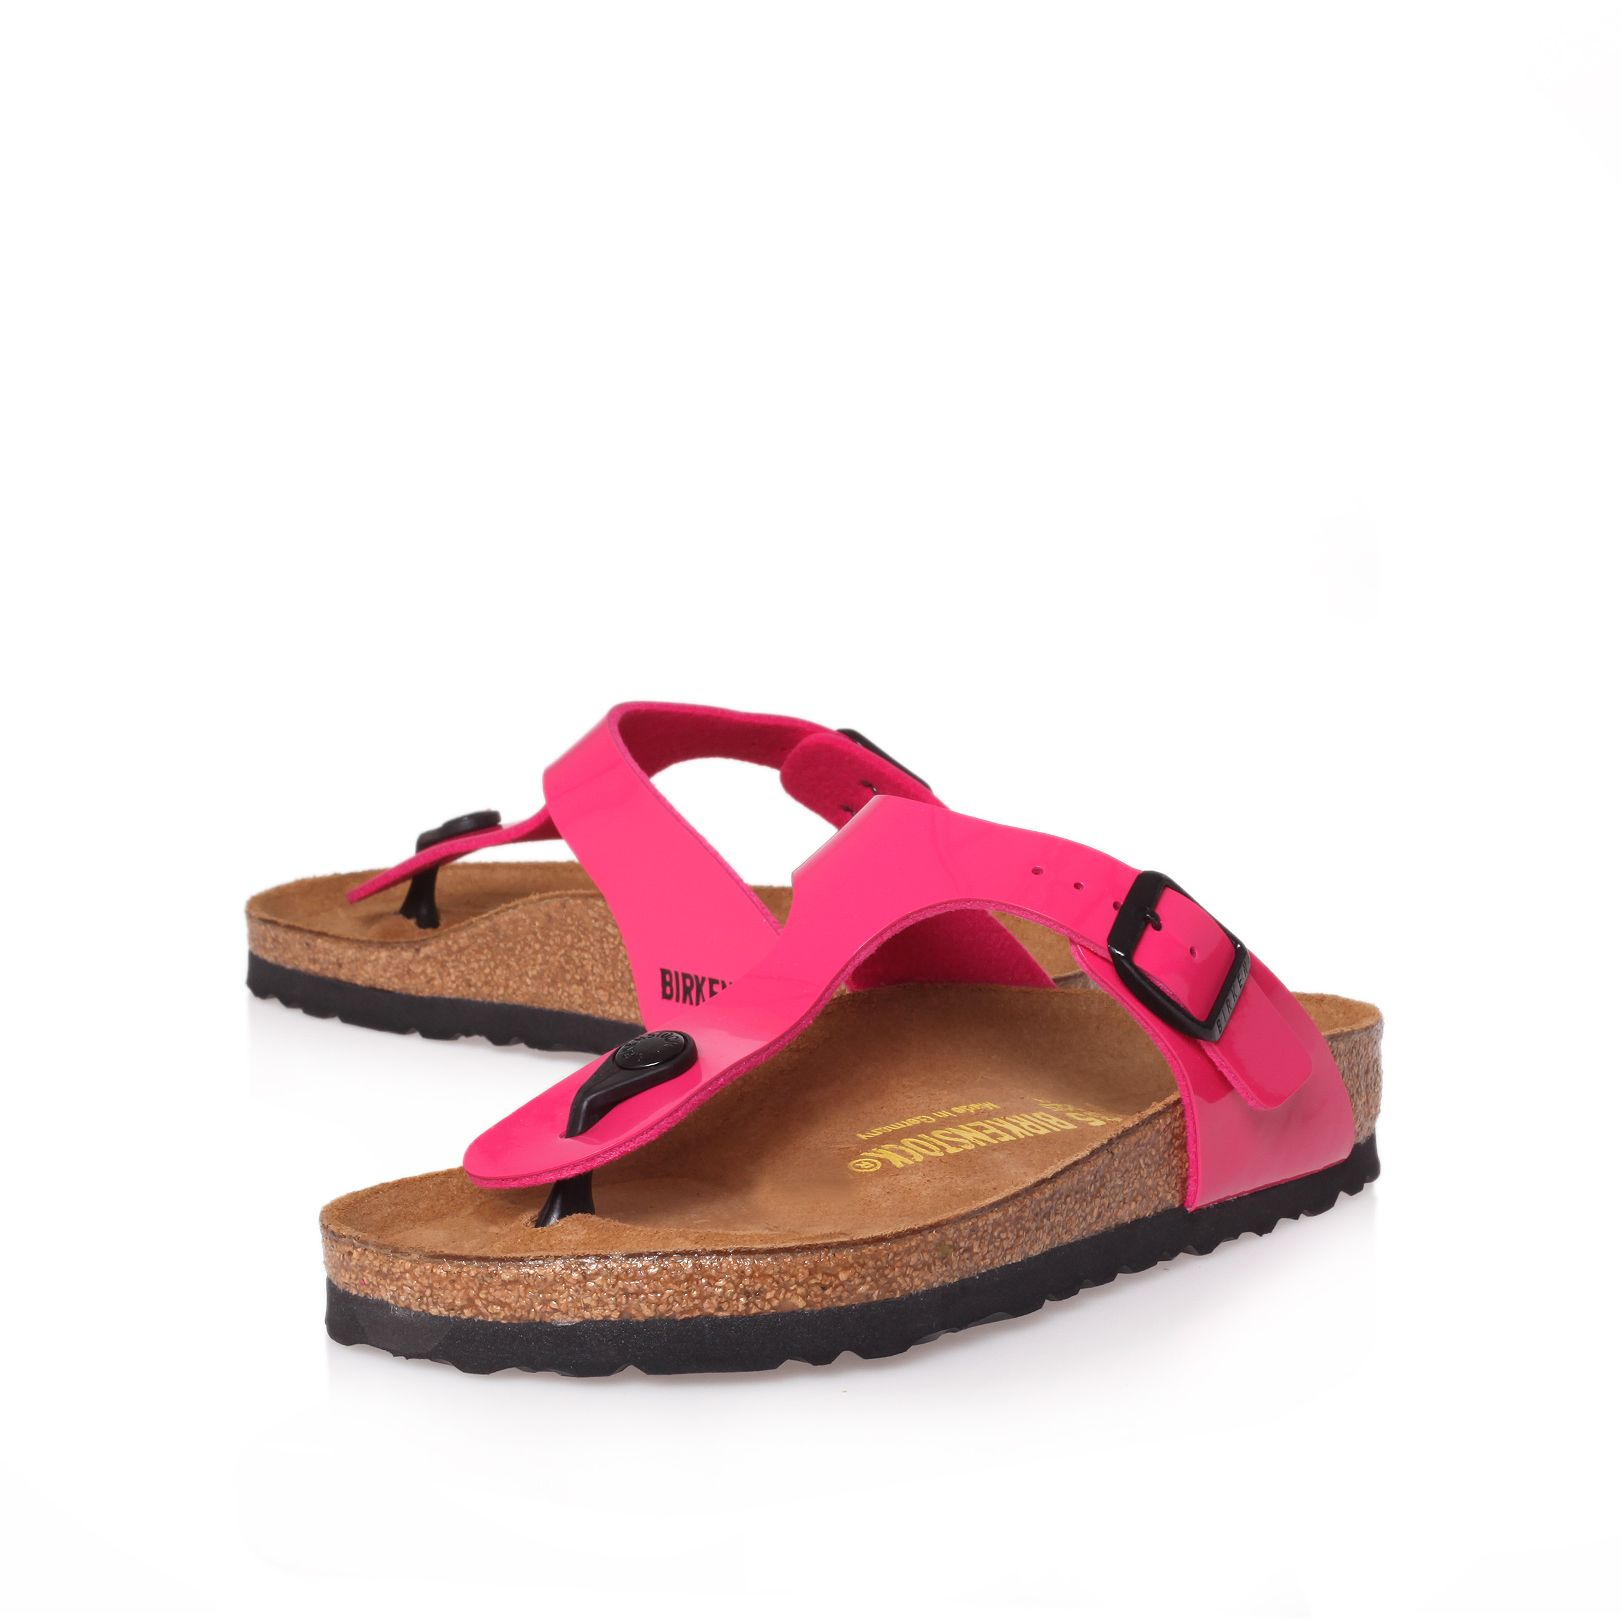 birkenstock gizeh leather t bar sandals in pink lyst